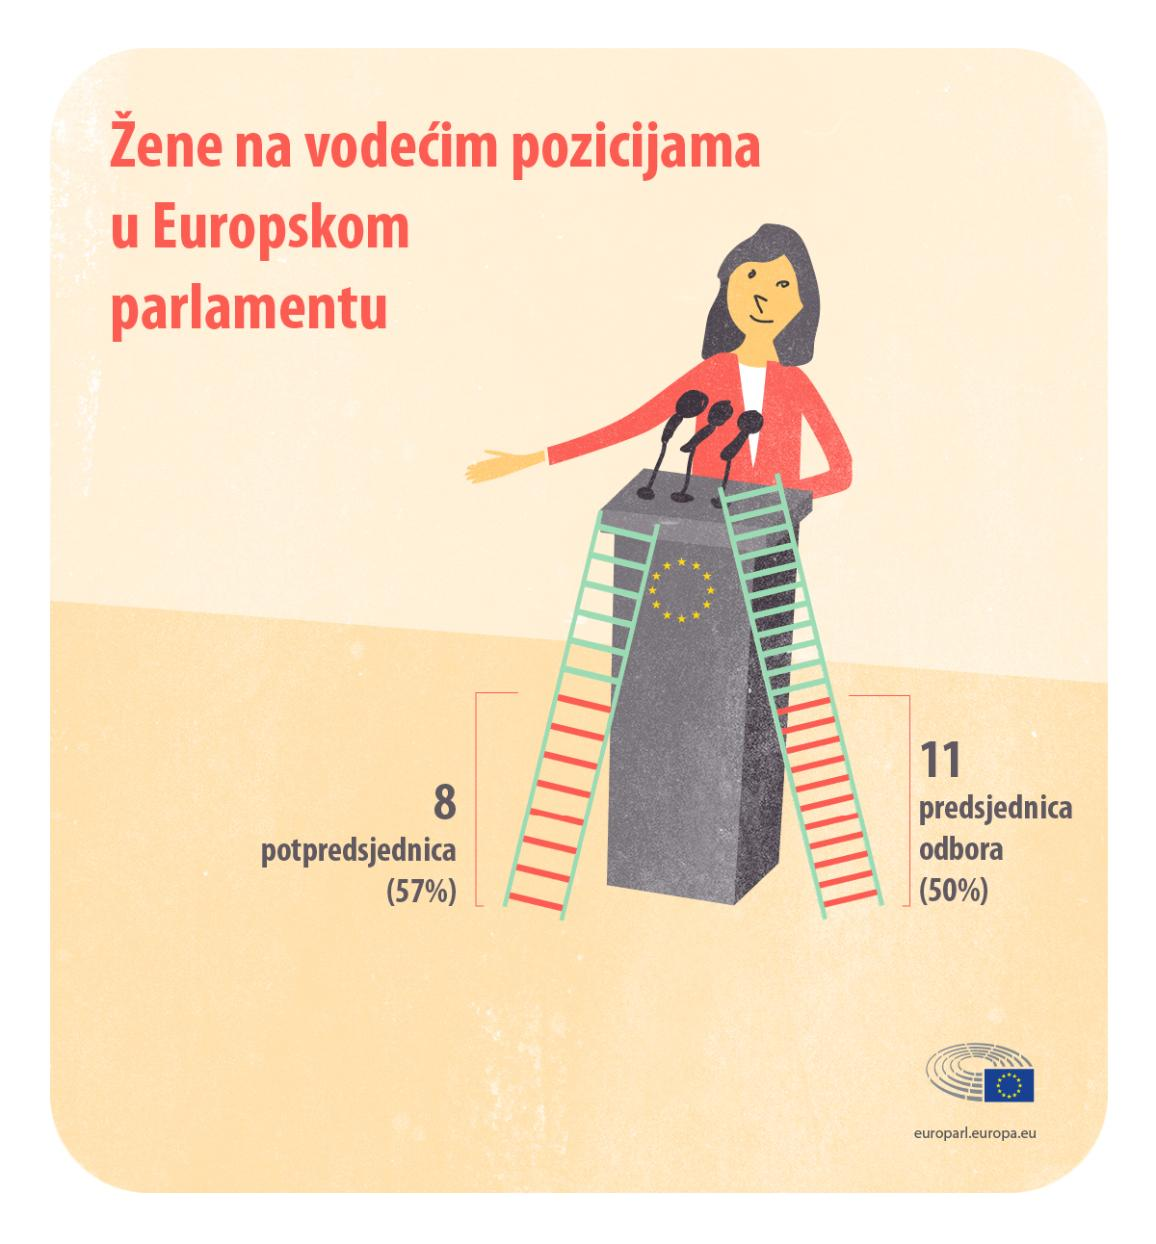 infographic on Women in the European Parliament